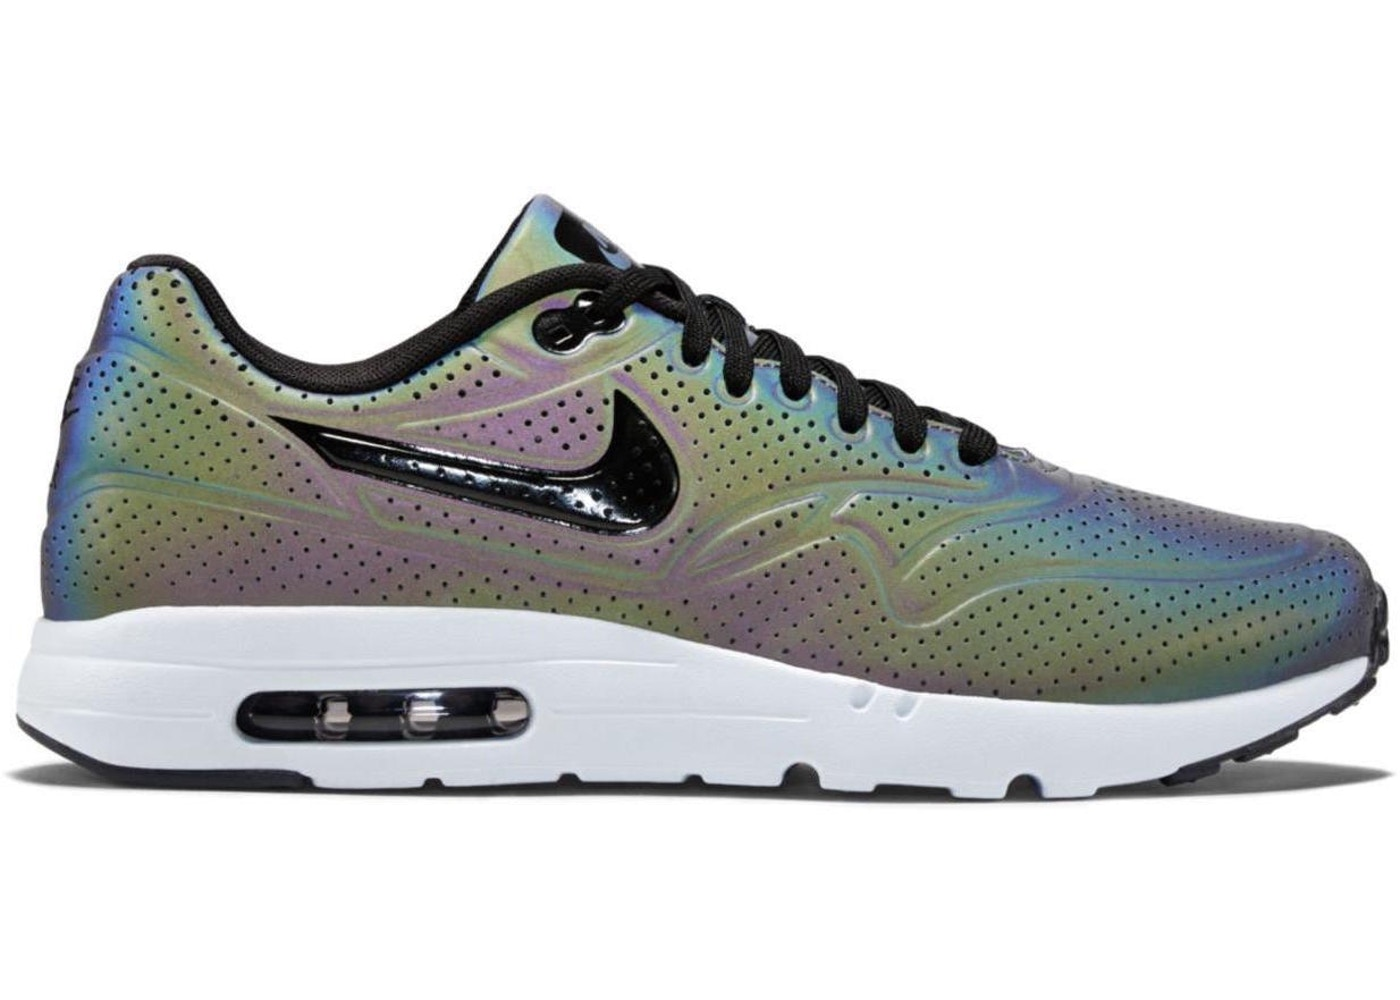 sale retailer a9629 e1274 Air Max 1 Ultra Moire Iridescent